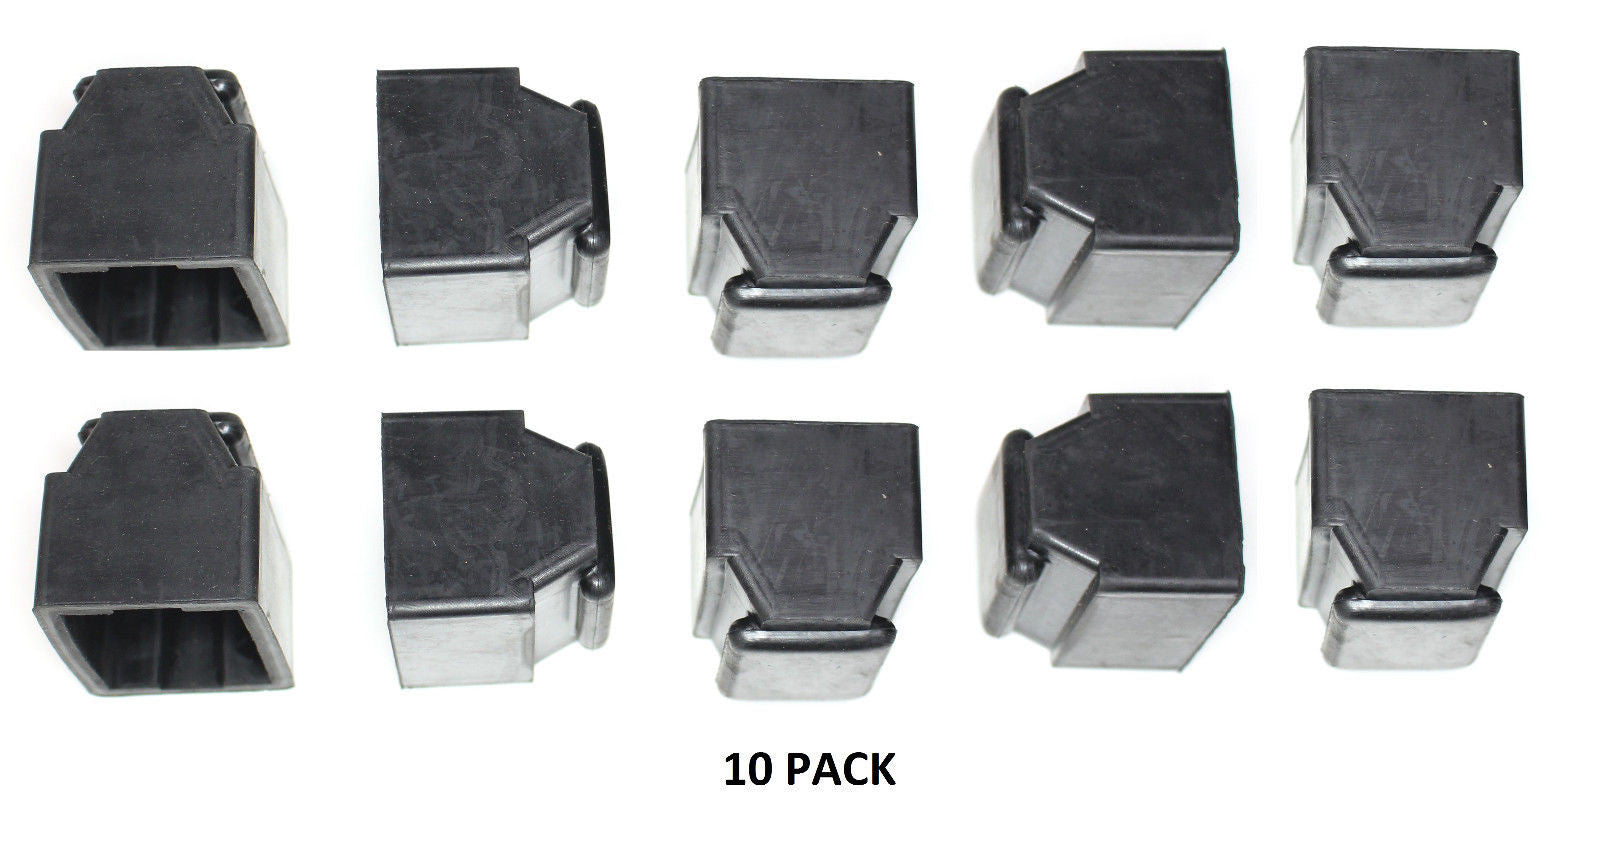 10 PACK Ruger 10/22 SR/22 Bx25 Mag Magazine Dust Cover Caps